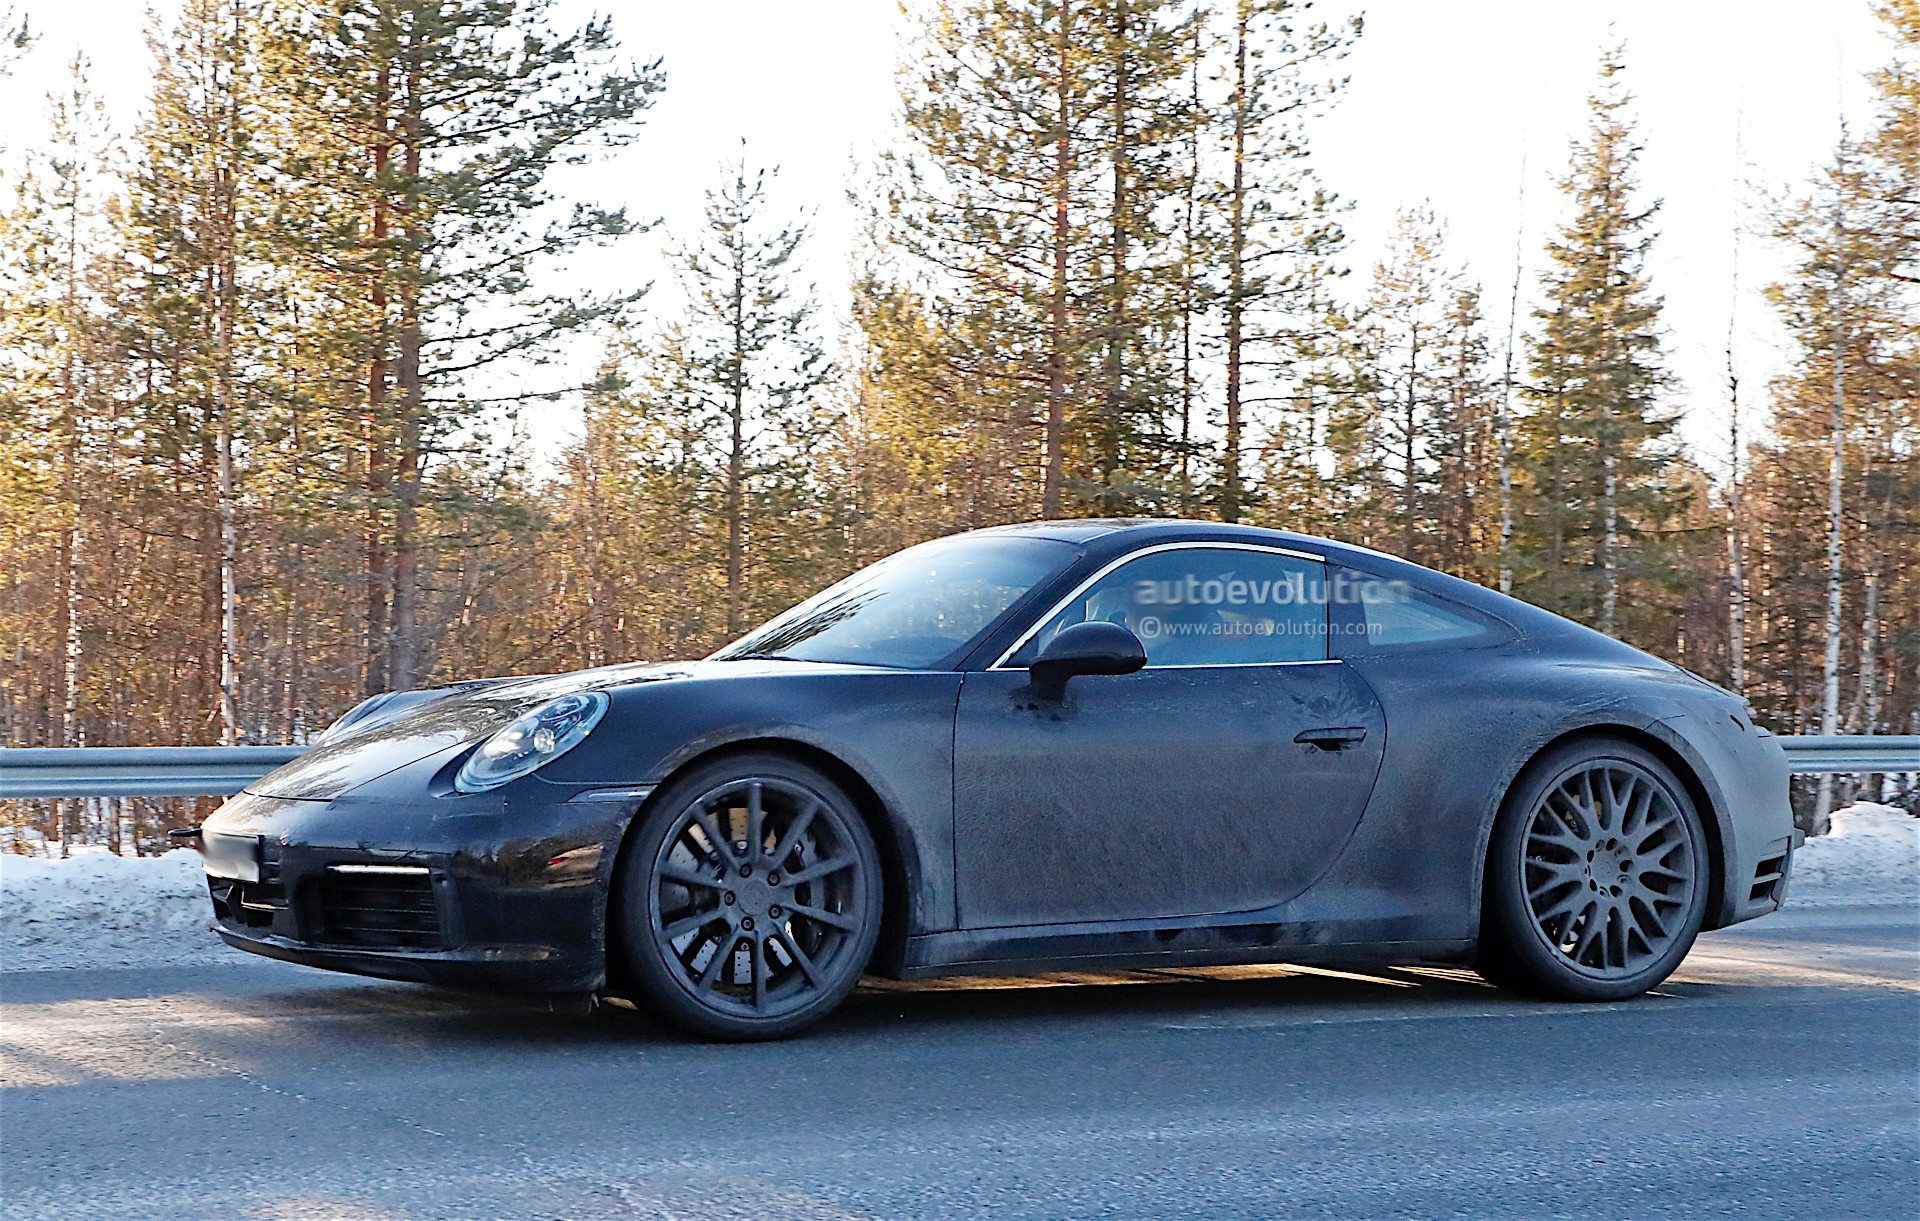 spy-photos-porsche-911-992-poses-with-the-spoiler-down-1-and-2-of-12_4